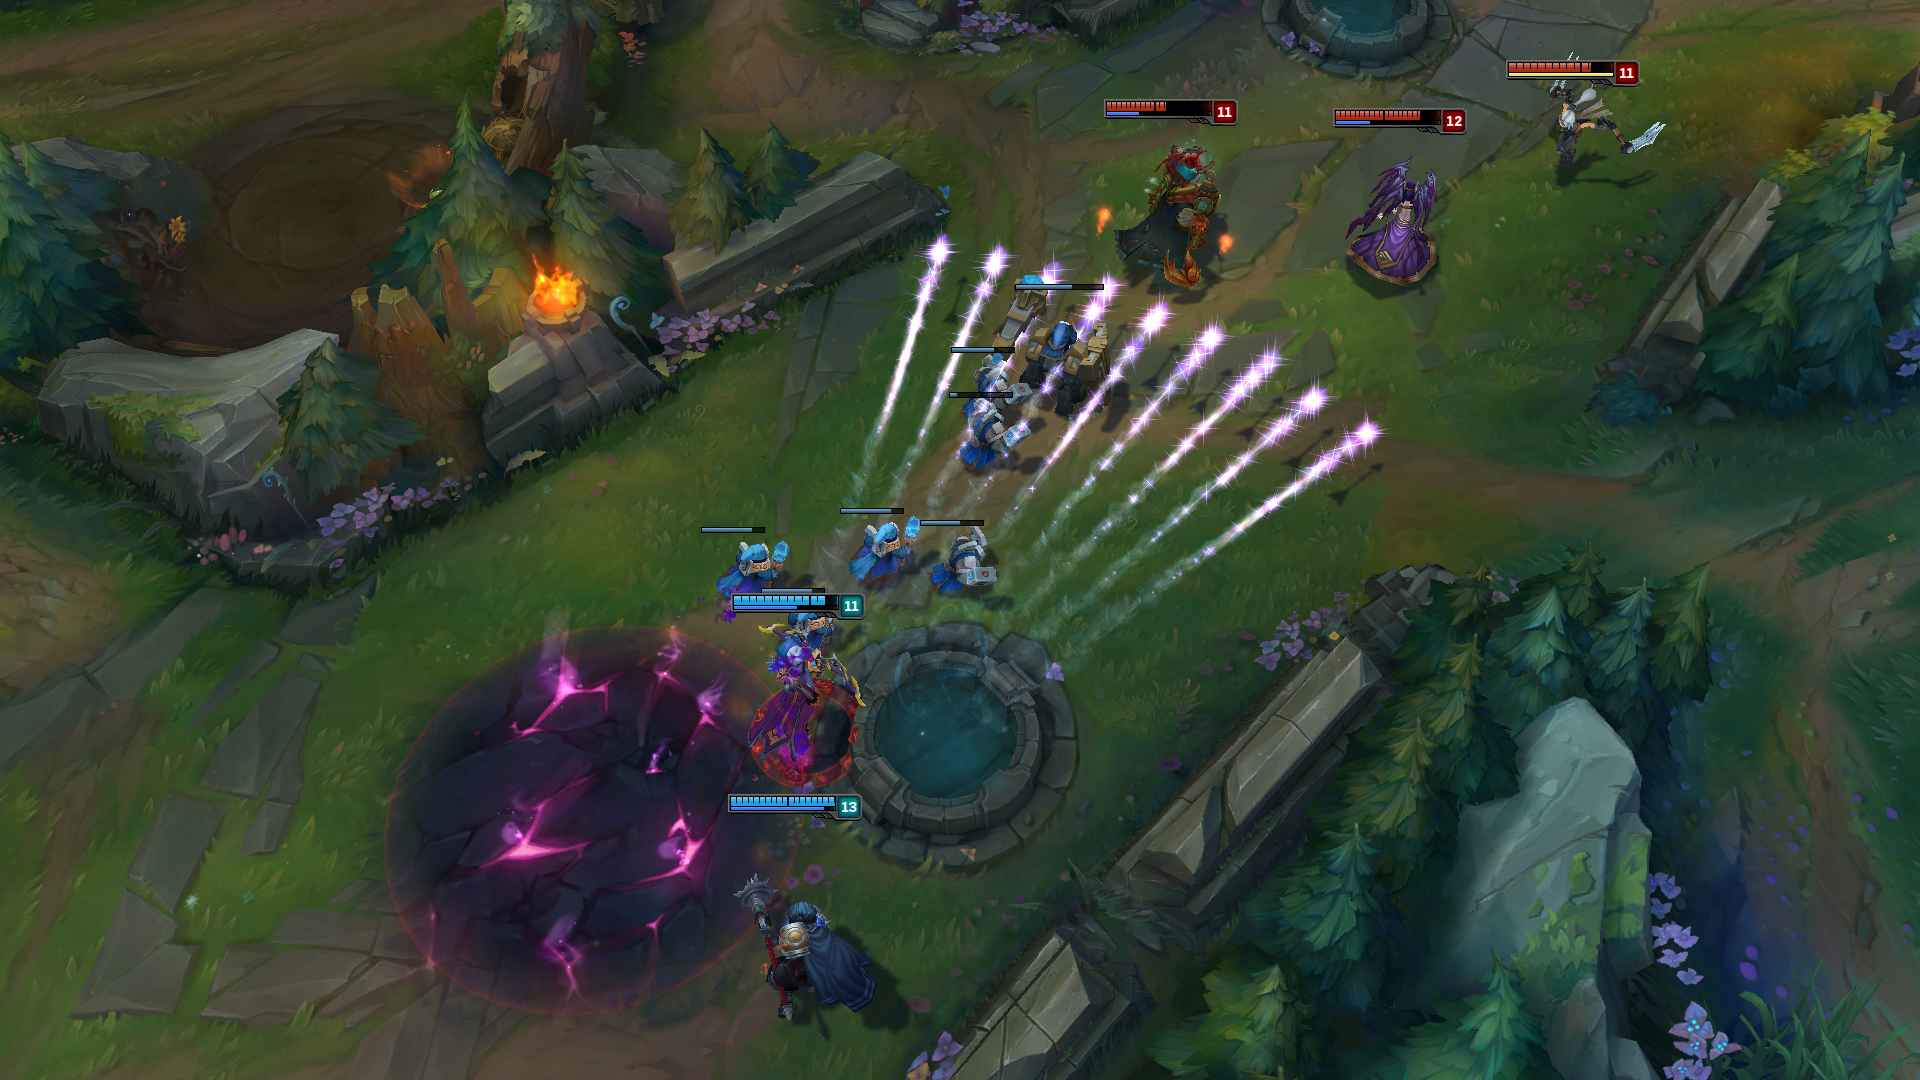 Tencent, Riot Games May Be Developing 'League of Legends' Mobile Game - Variety